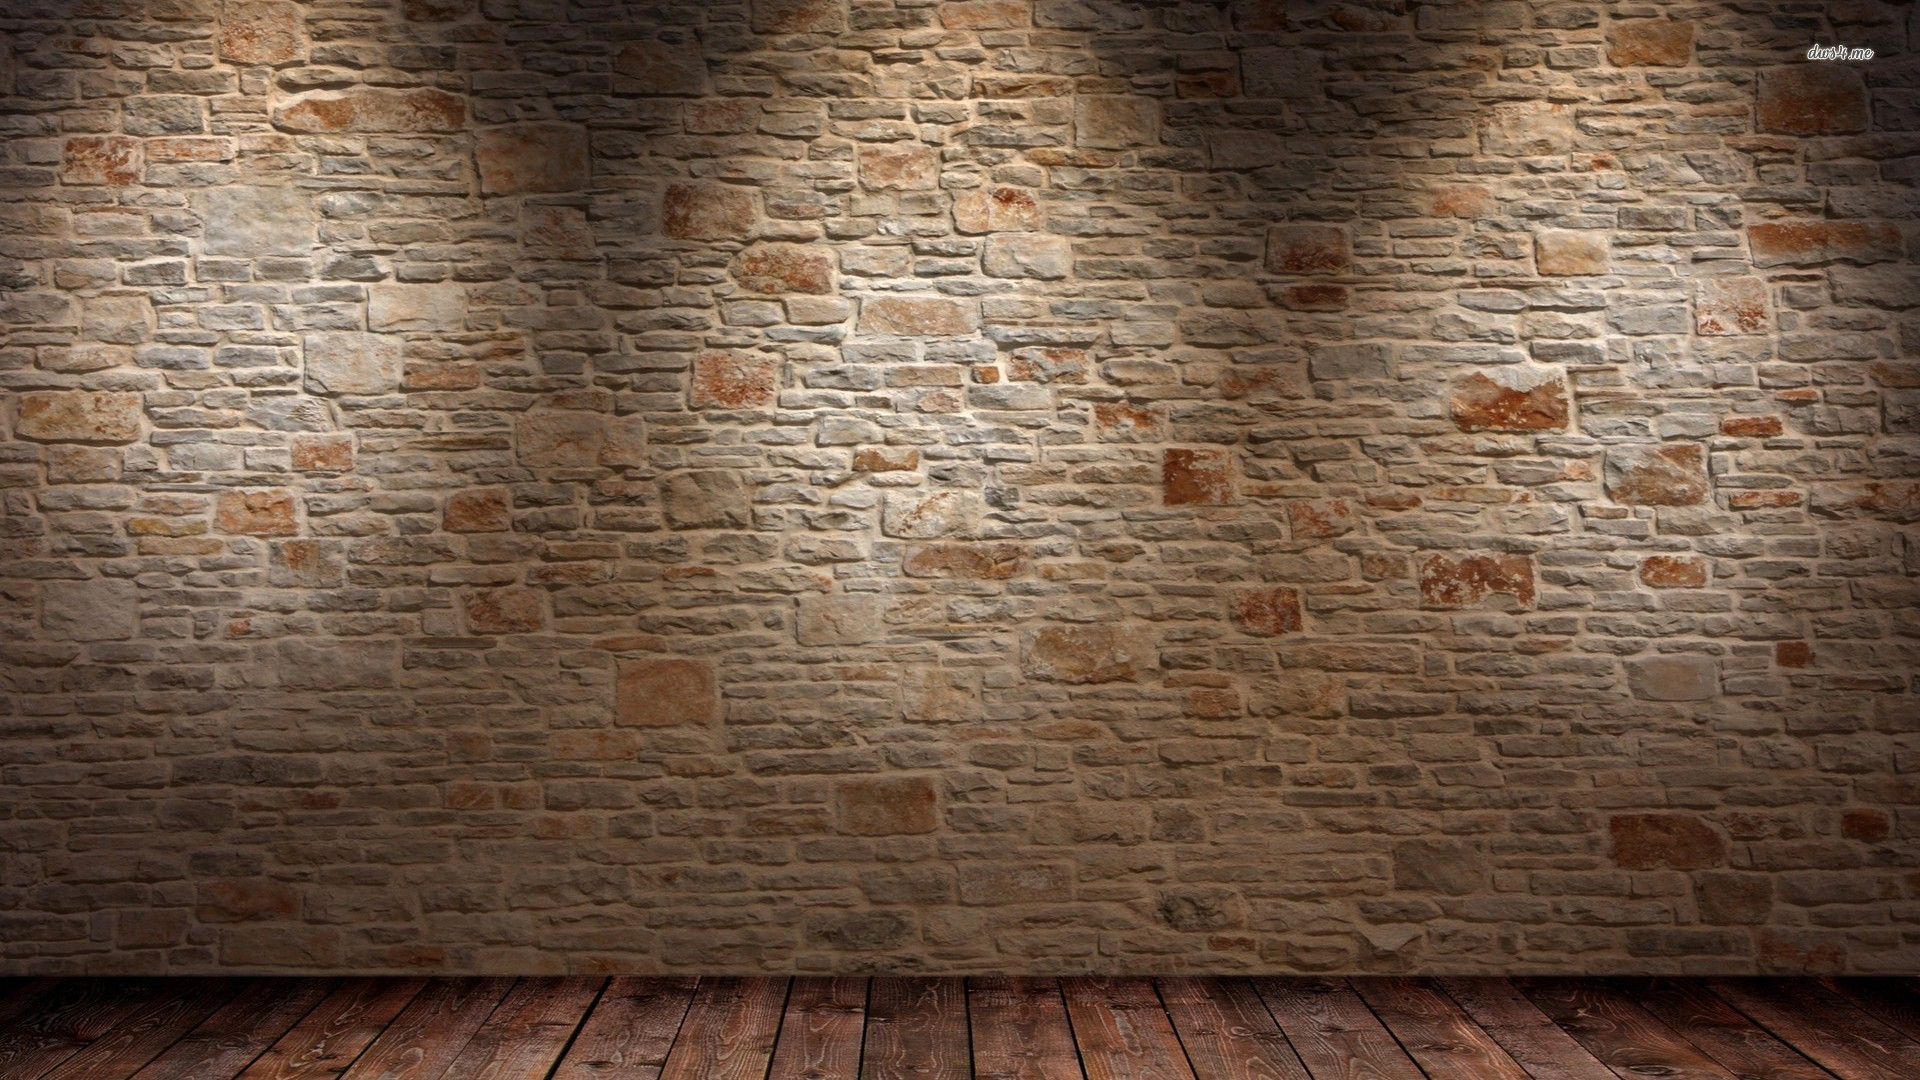 Brick wall wallpaper hd desktop wallpapers 4k hd Wallpapers for the wall